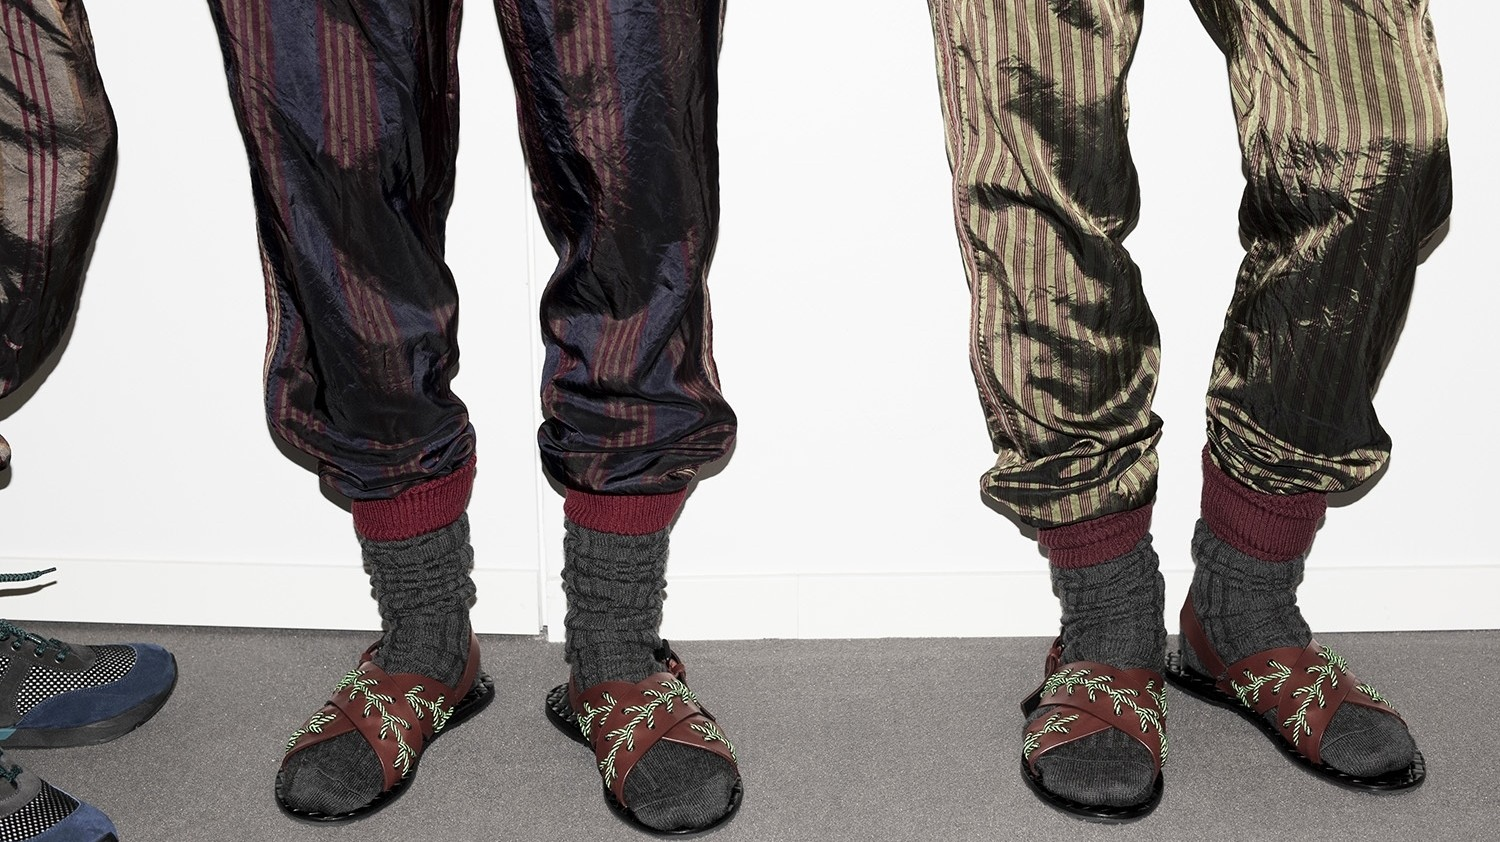 socks with sandals are officially a thing at milan fashion week